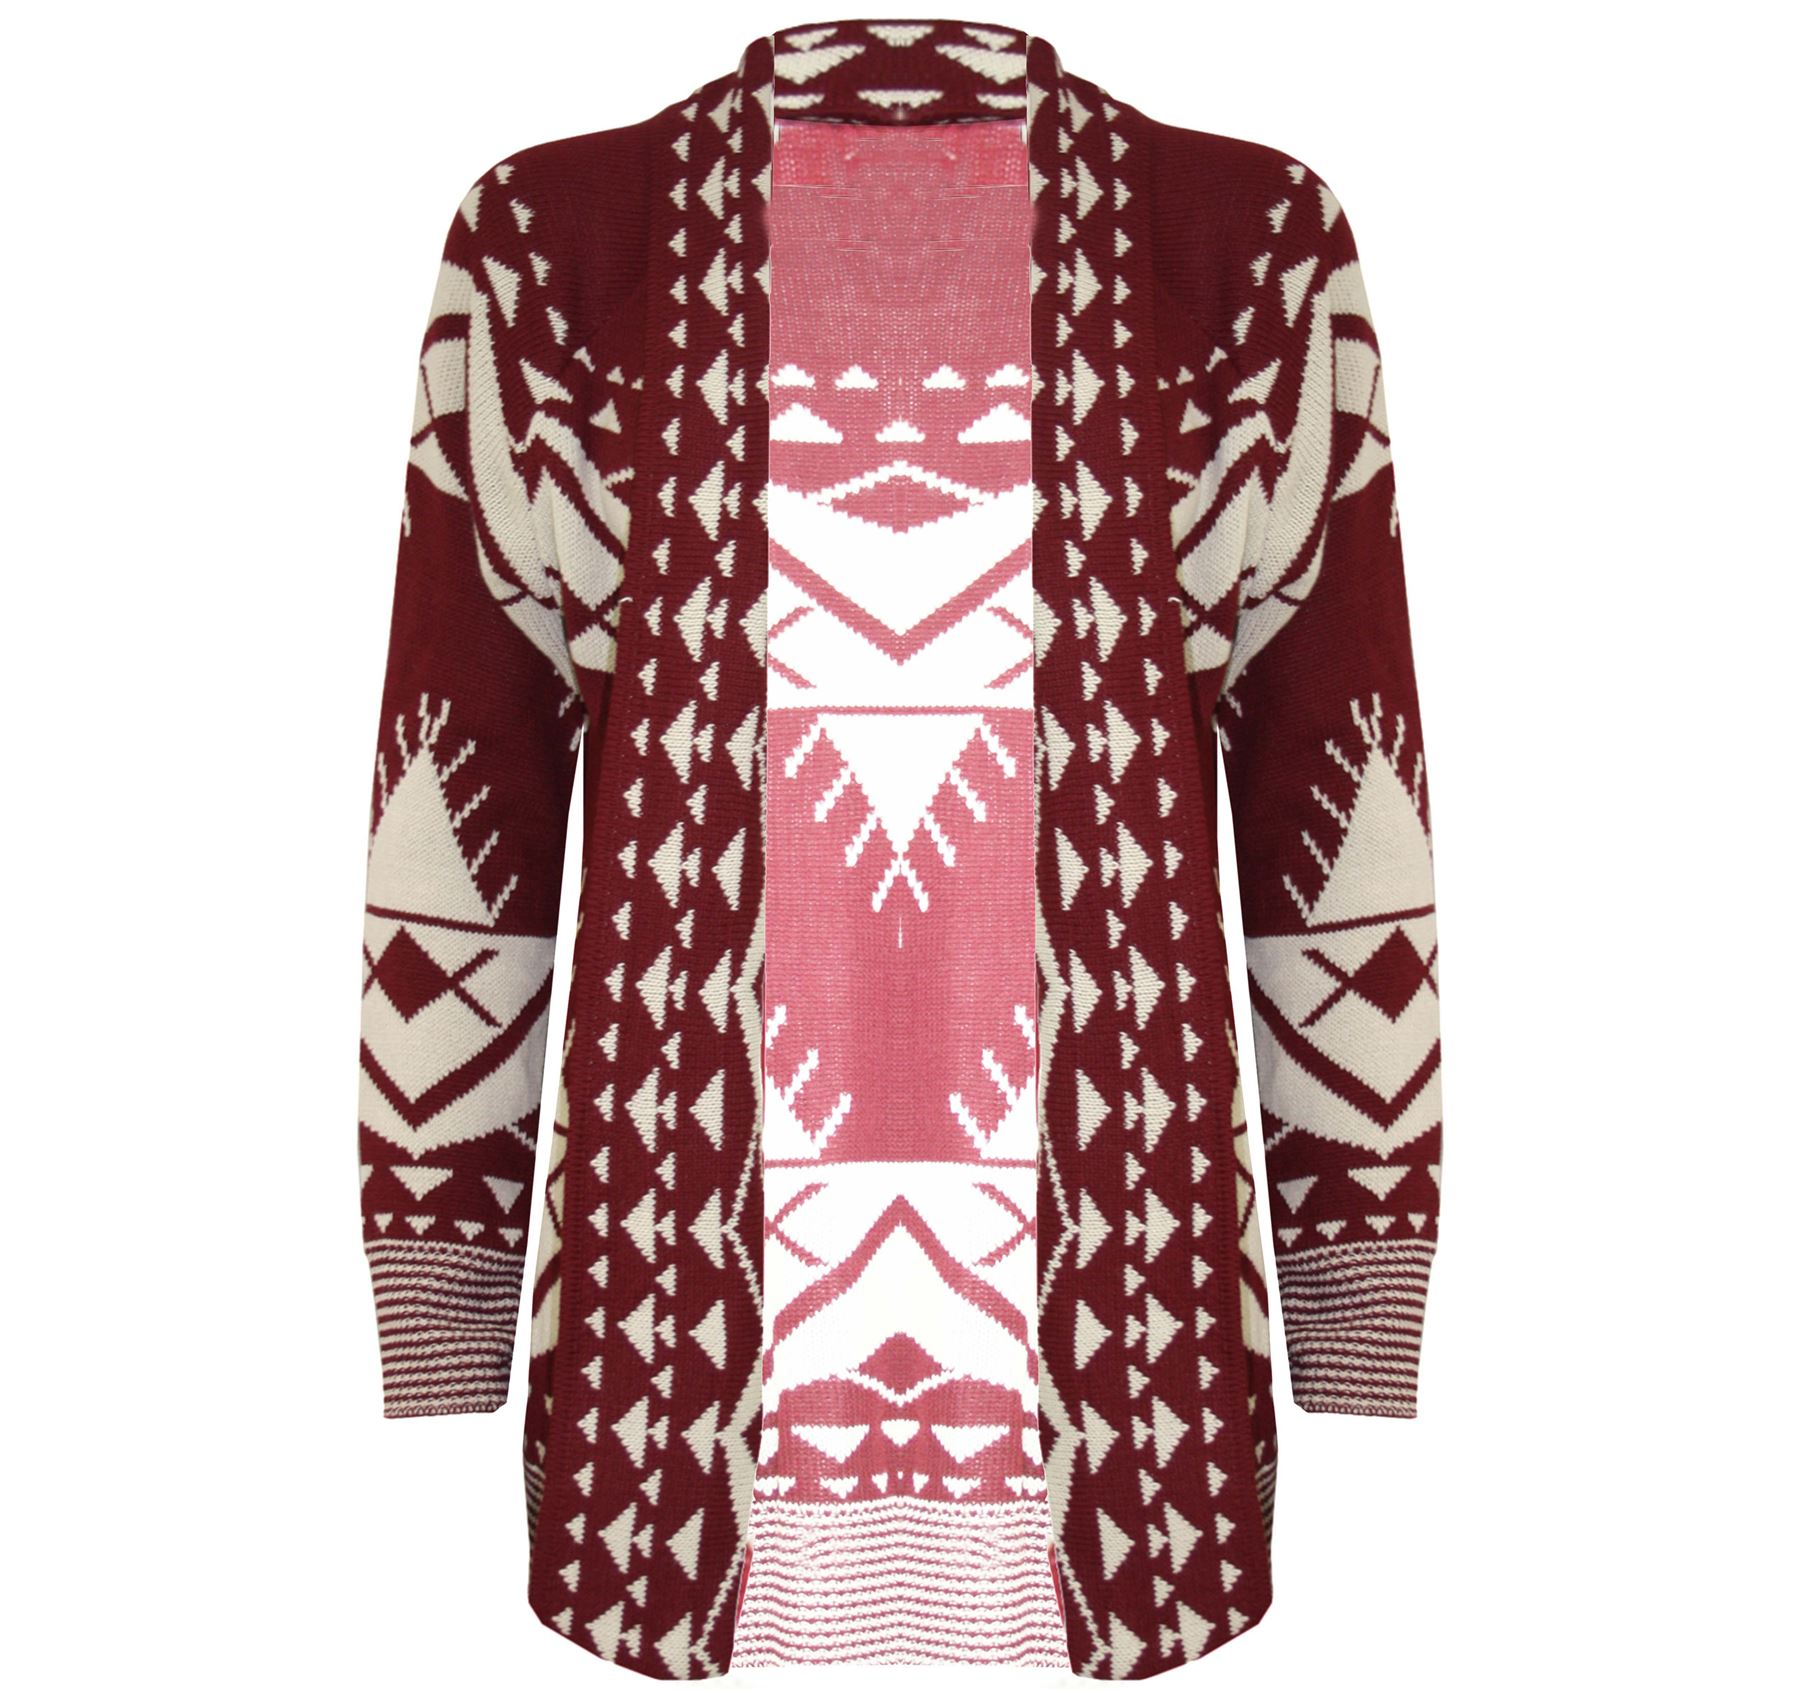 Free shipping 17% OFF Open Front Tribal Print Cardigan in WHITE/BLACK L with only $ online and shop other cheap Sweaters & Cardigans on sale at specialtysports.ga Fashion Clothing Site with greatest number of Latest casual style Dresses as well as other categories such as men, kids, swimwear at a affordable price.